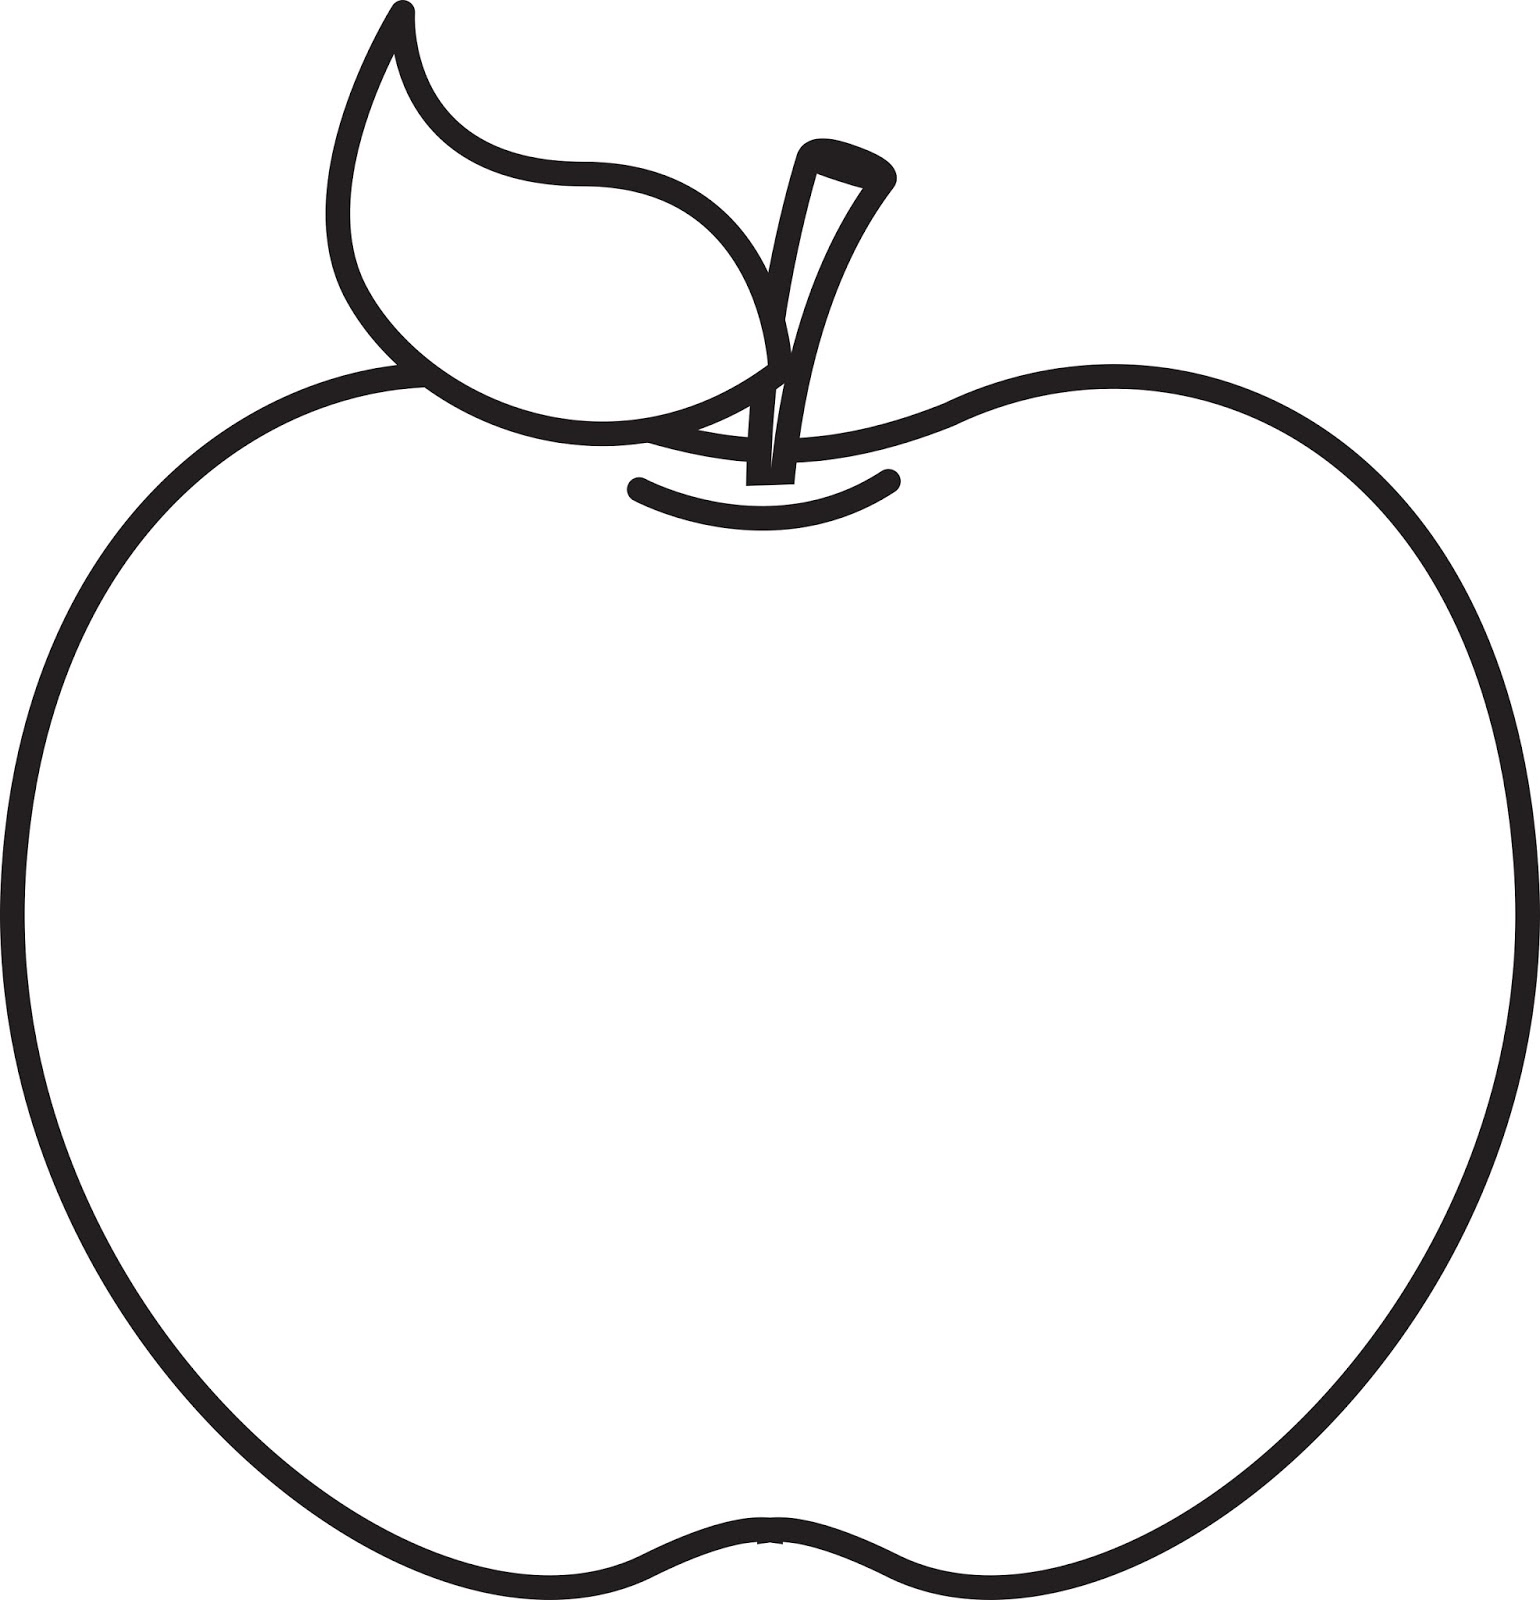 1540x1600 Apple Clipart Bw